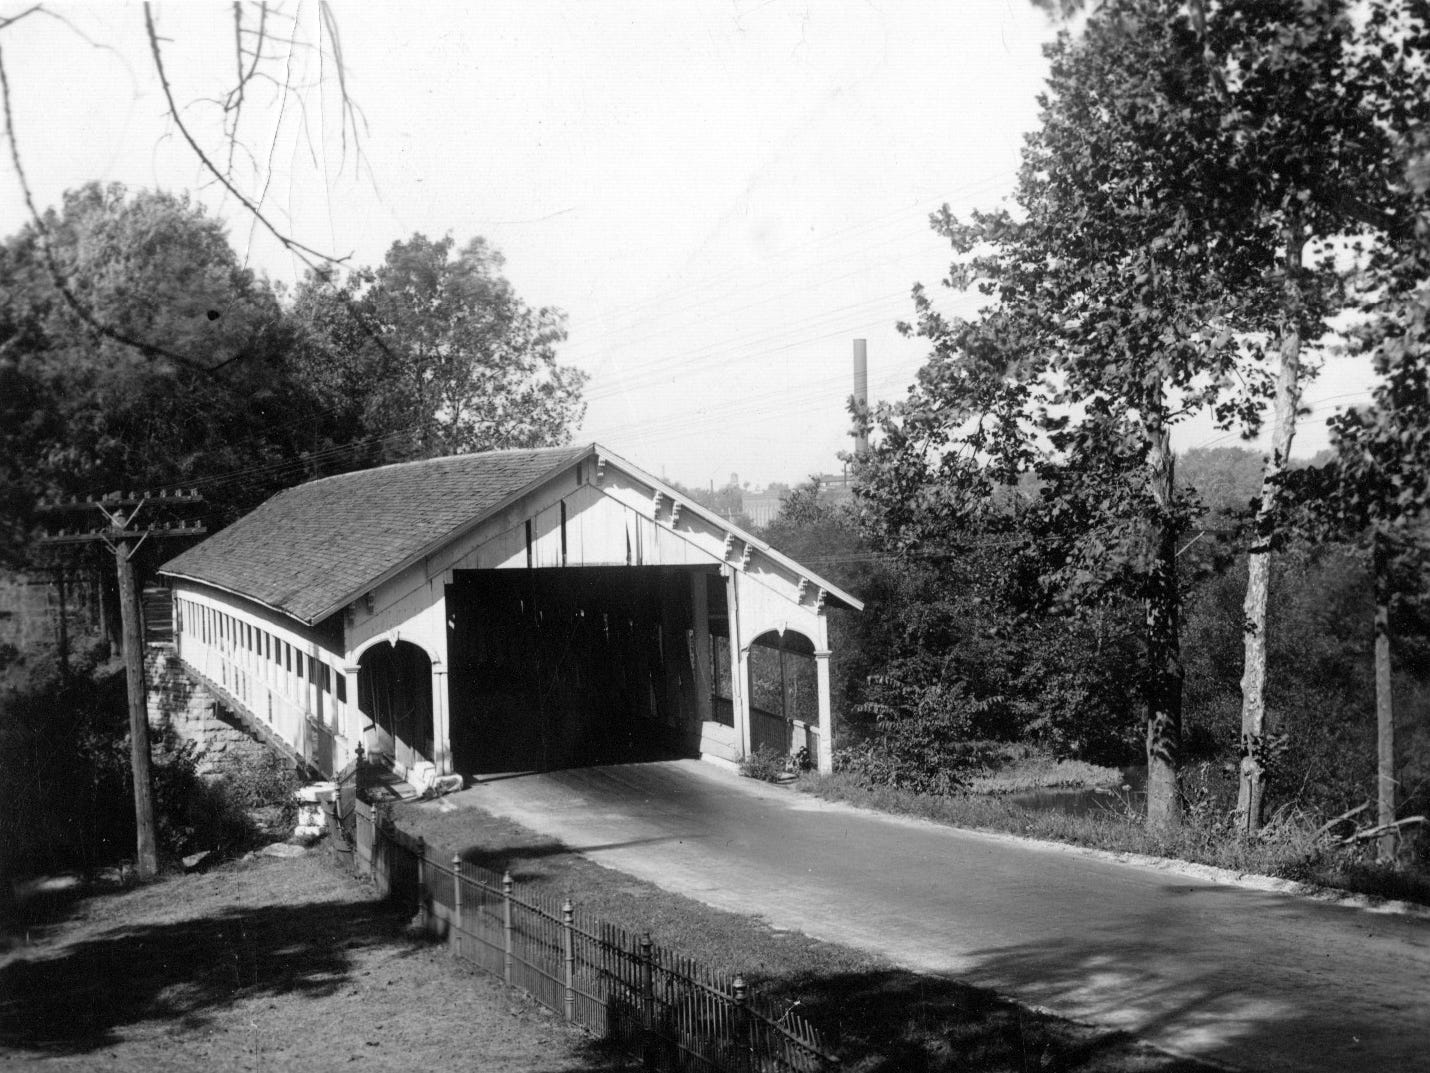 Single-span wooden bridge over Flat Rock Creek on S.R. 44 near Rushville in 1933. Pedestrian walkways are on both sides of the bridge.